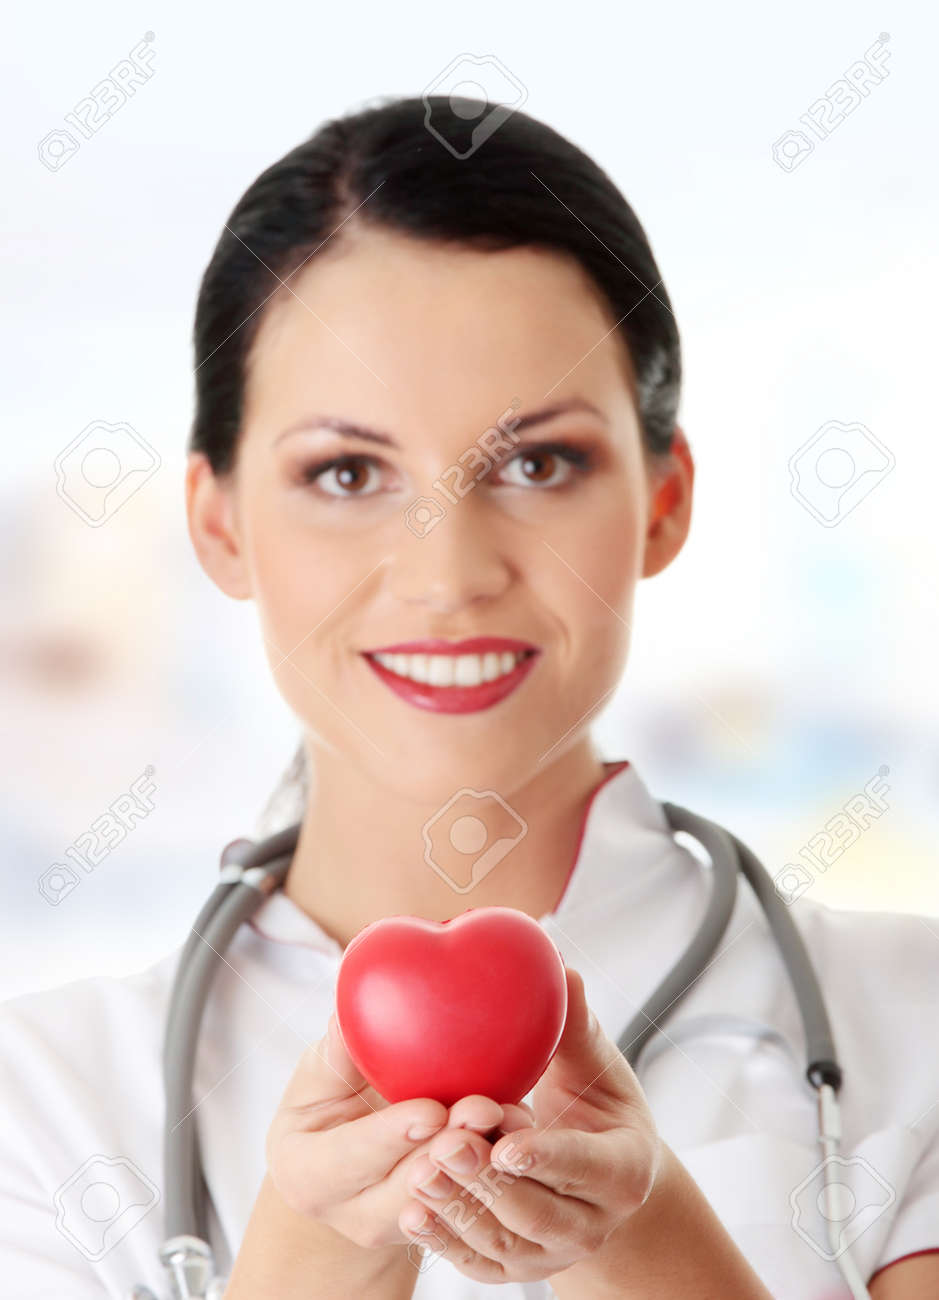 Young doctor with heart in her hand Stock Photo - 9007872